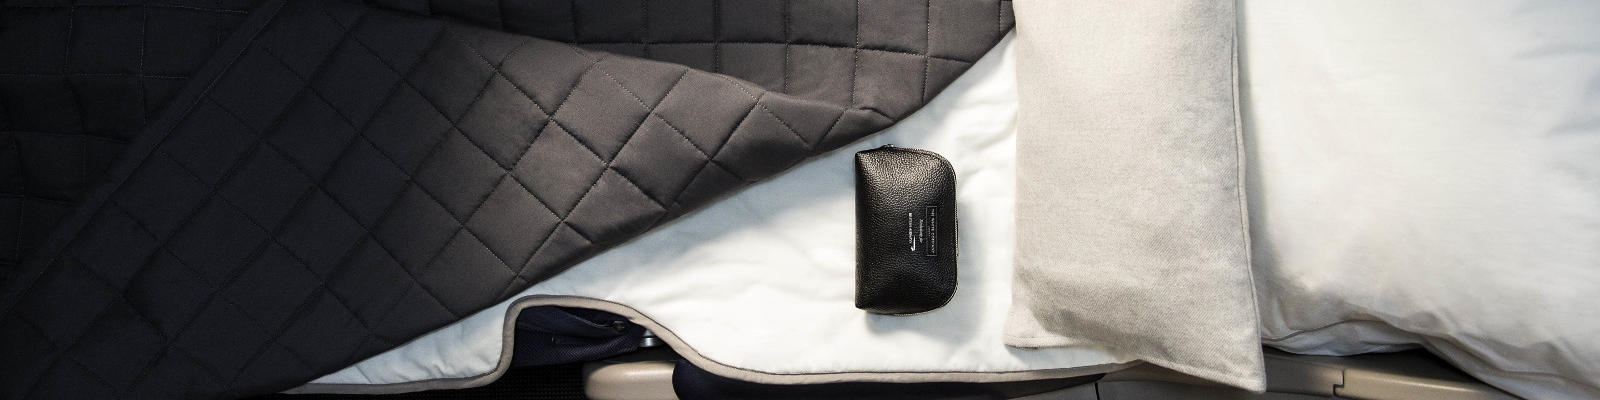 british airways club world business class bed